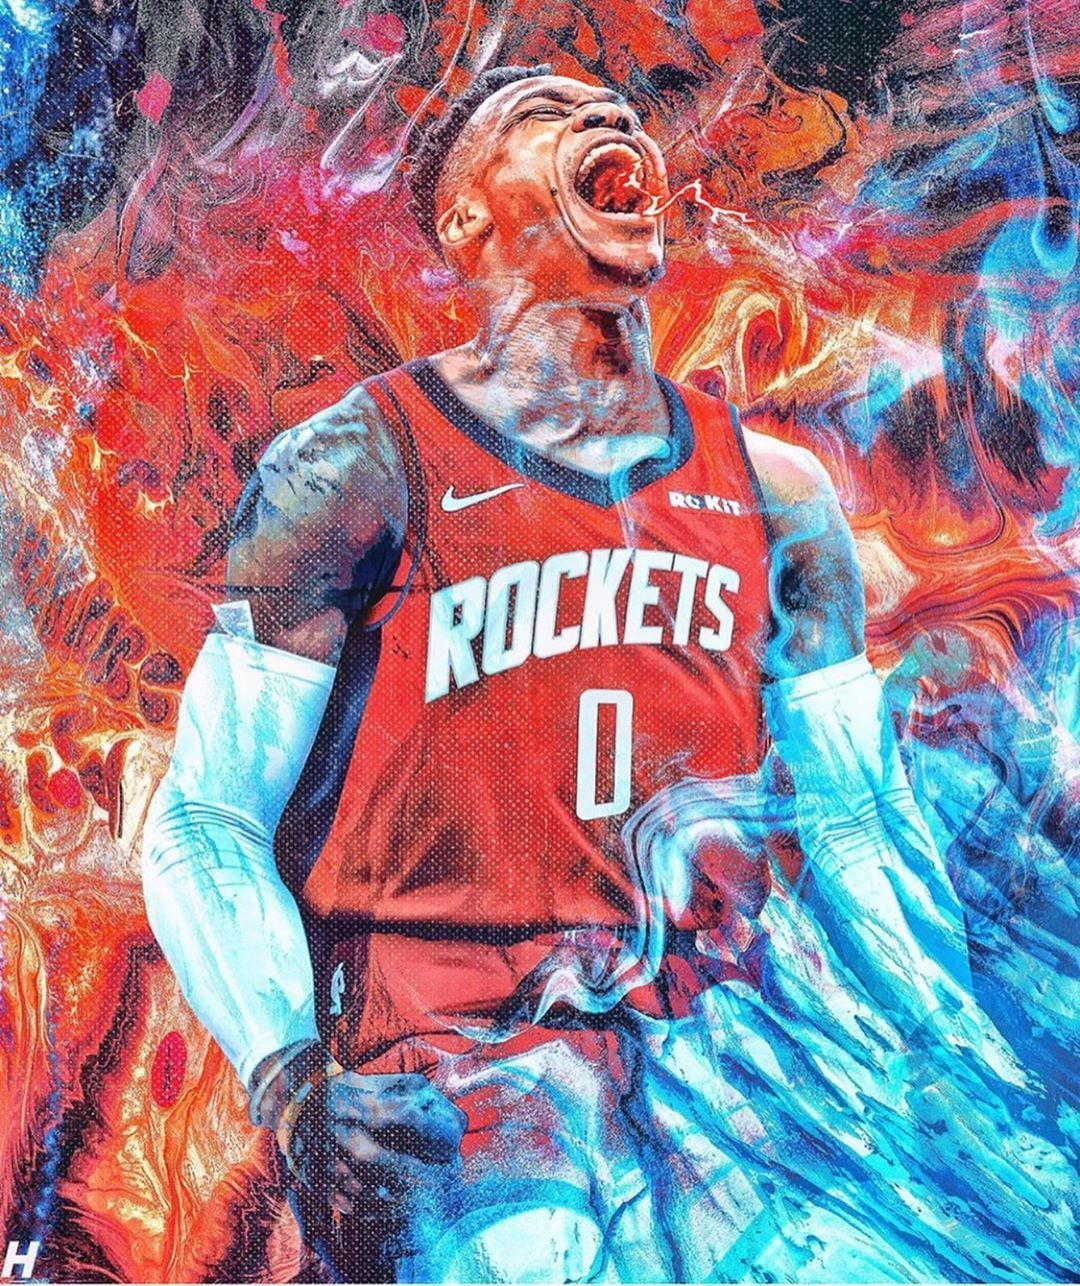 Russell Westbrook Wallpaper For Mobile Phone Tablet Desktop Computer And Other Devices Hd And 4k Wallpapers In 2020 Westbrook Wallpapers Nba Wallpapers Nba Artwork